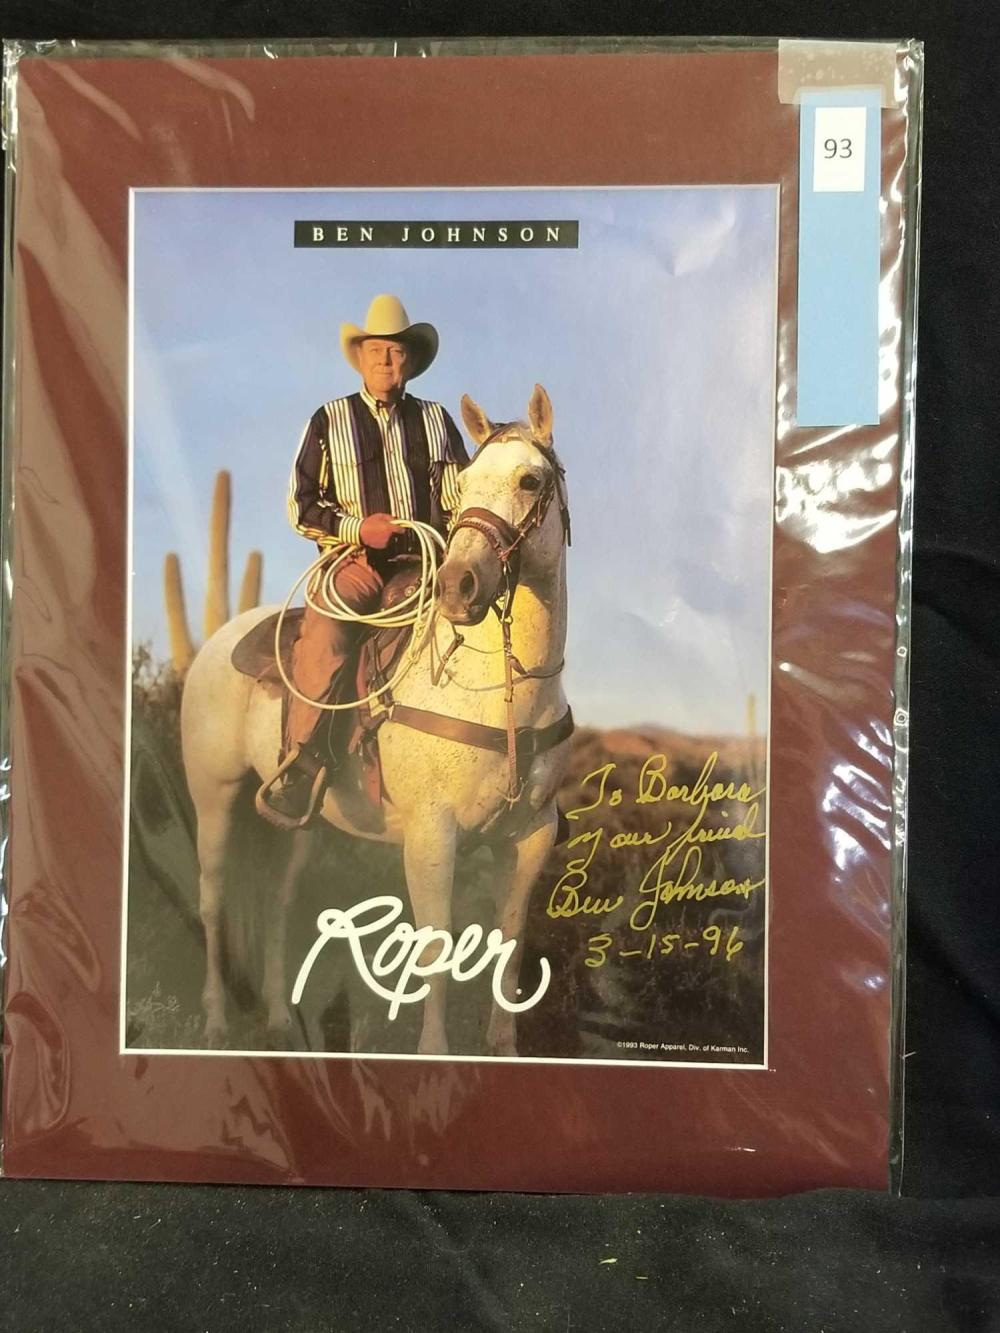 BEN JOHNSON SIGNED ROPER APPAREL AD